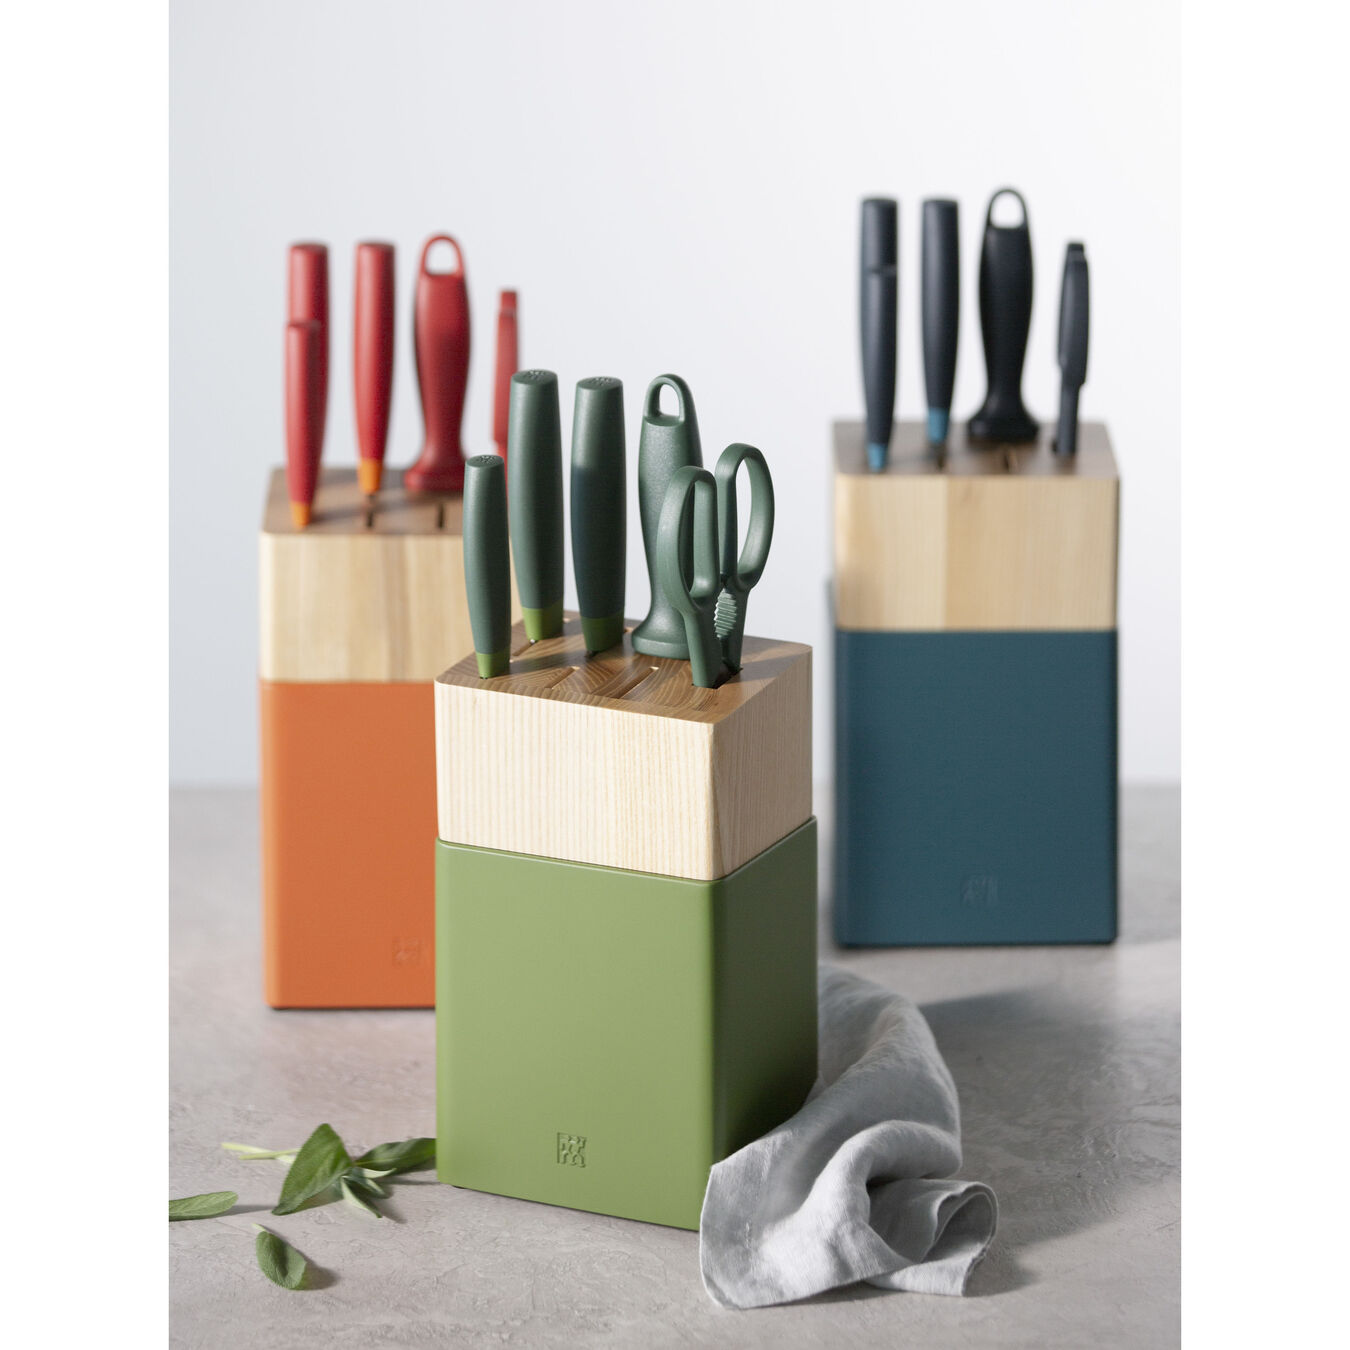 8-pc, Z Now S Knife Block Set, lime green,,large 6